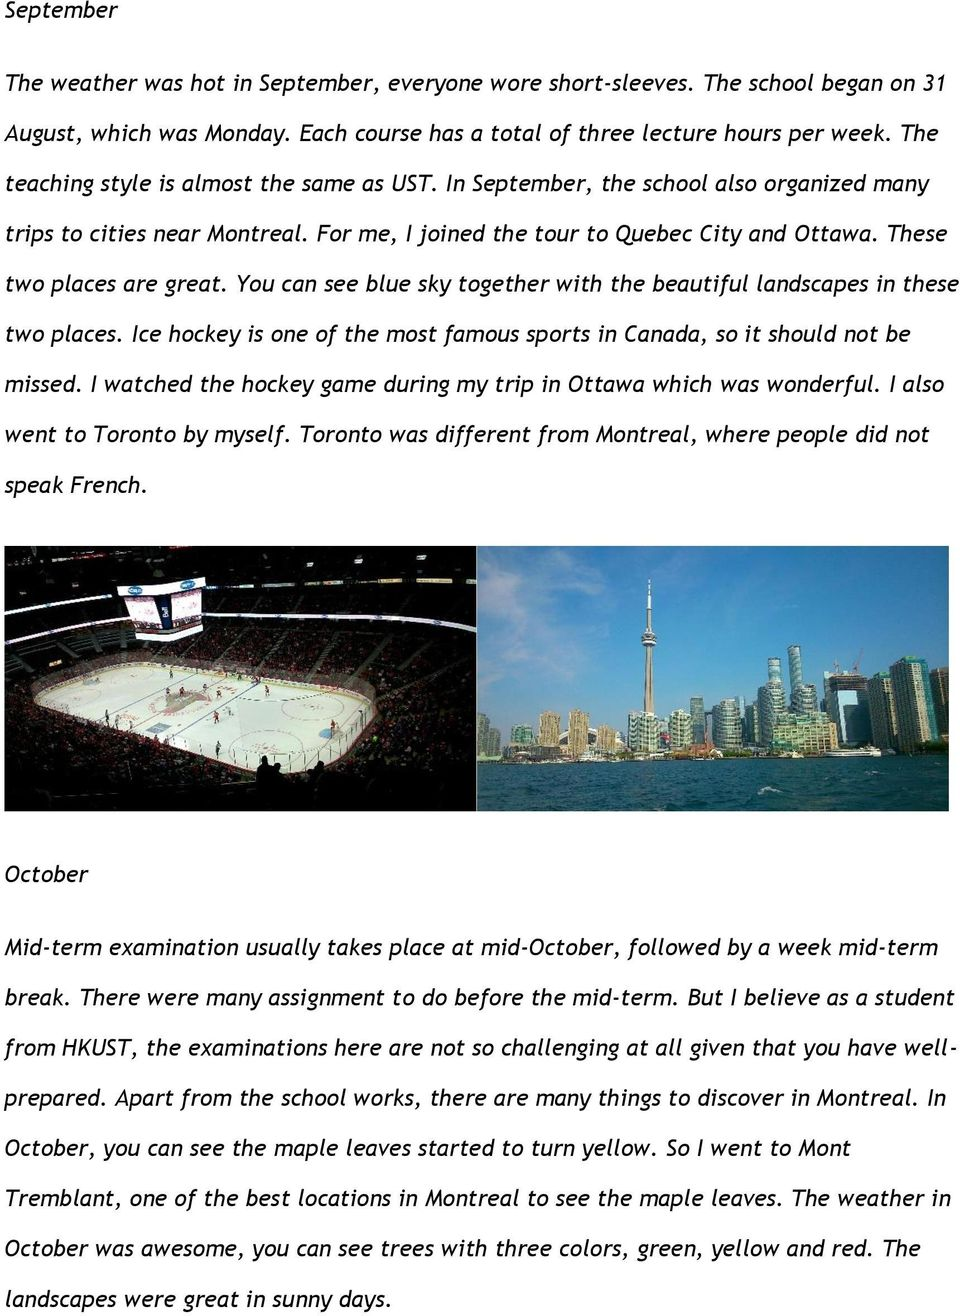 These two places are great. You can see blue sky together with the beautiful landscapes in these two places. Ice hockey is one of the most famous sports in Canada, so it should not be missed.